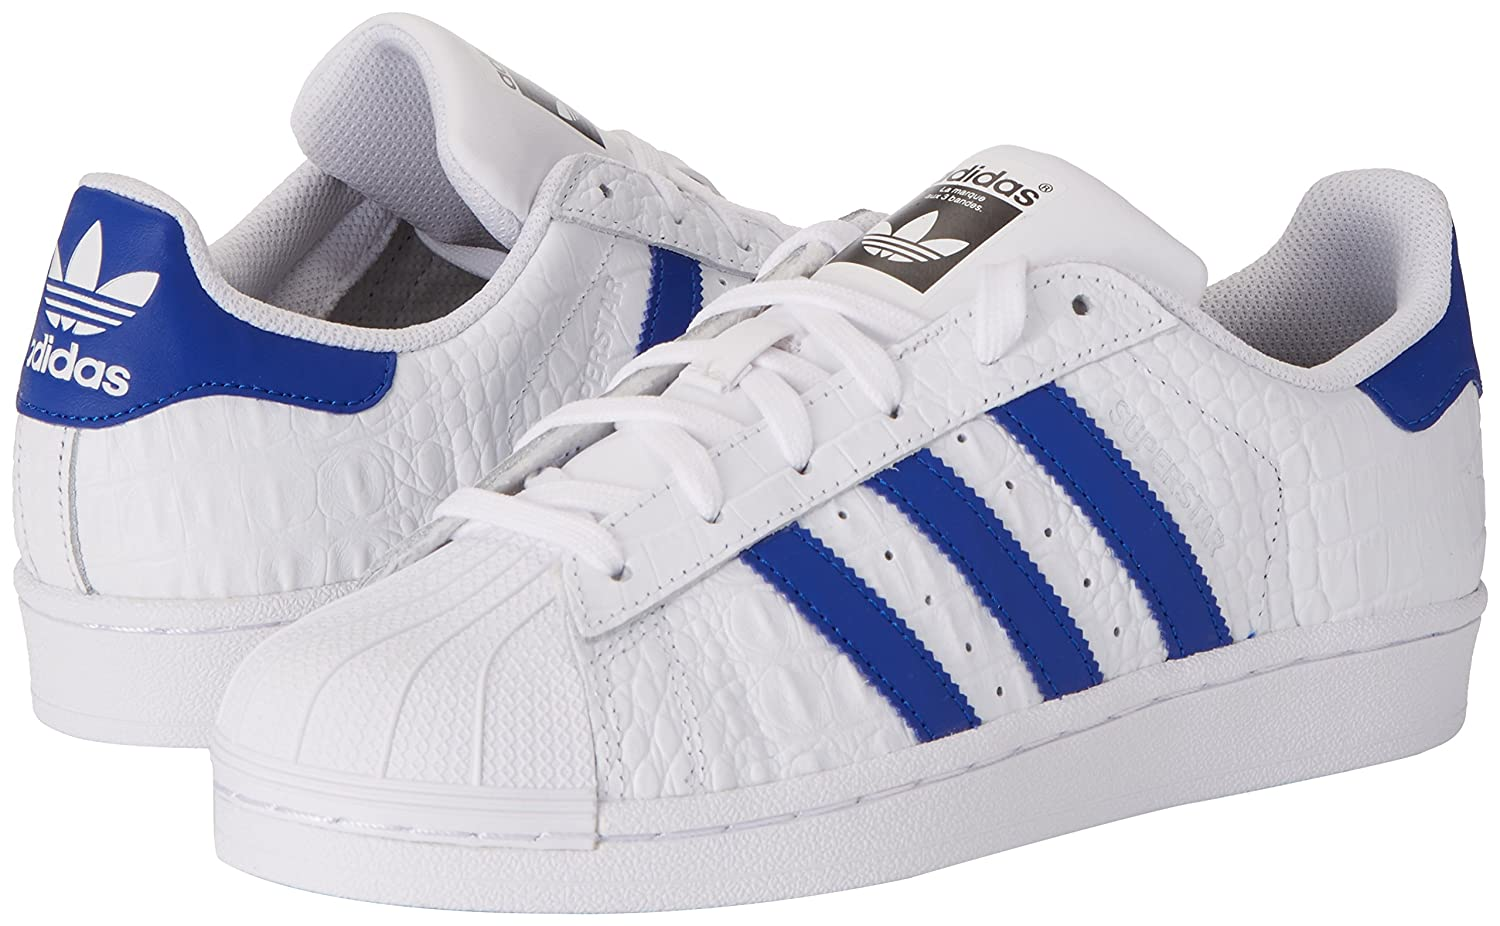 adidas superstar shoes white and blue